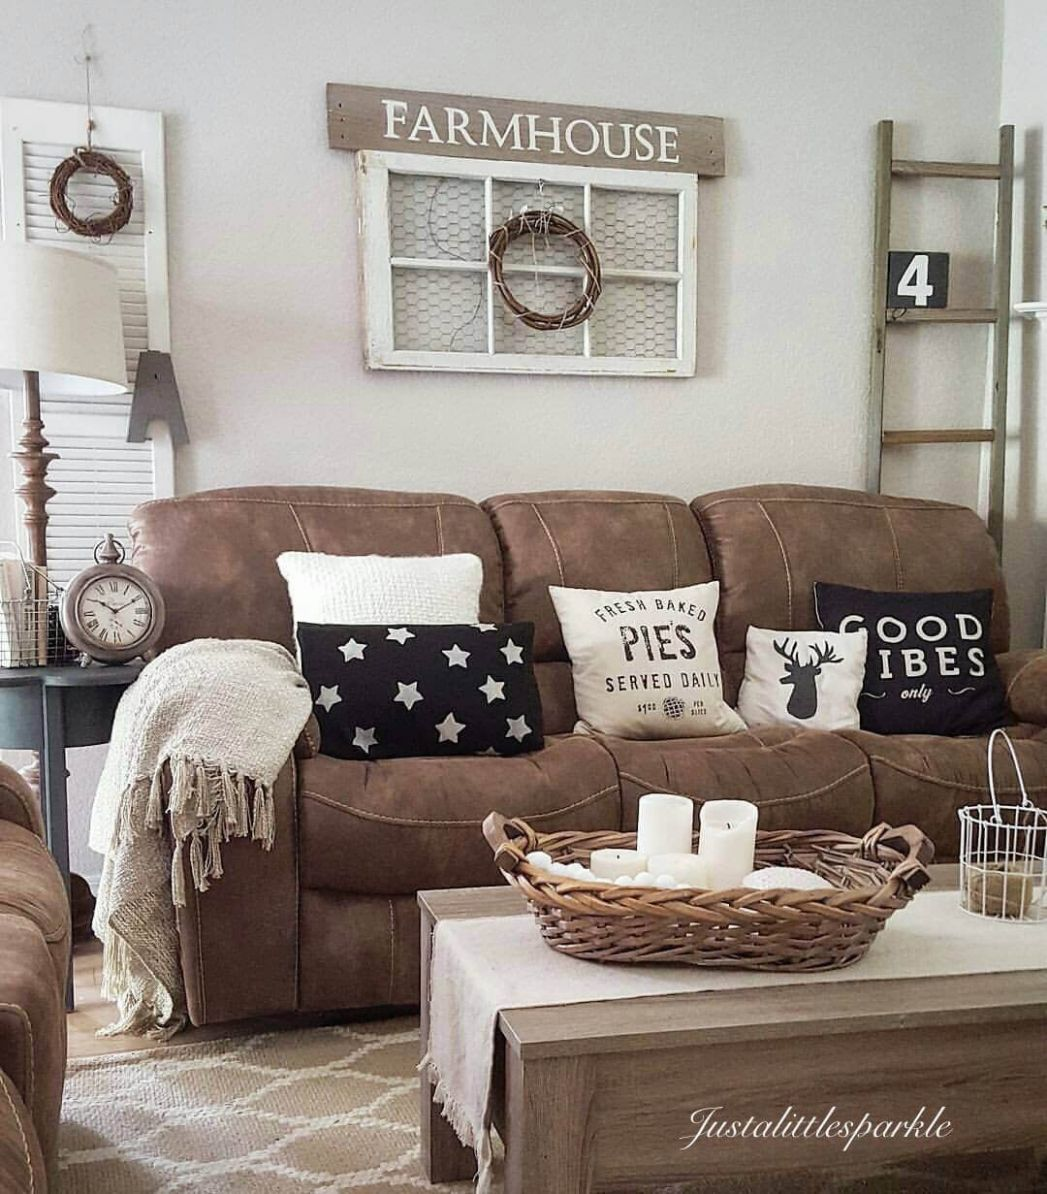 12 Rustic Farmhouse Living Room Design and Decor Ideas for Your ..